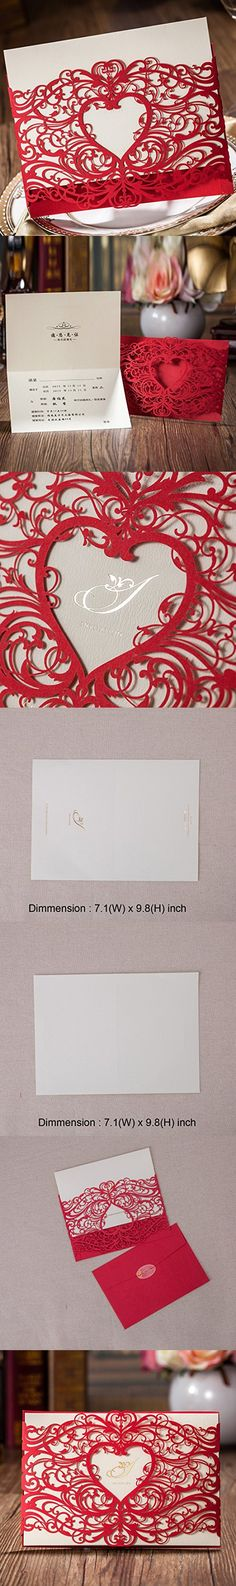 WISHMADE Laser Cut Invitations Cards Sets Red 50 Pieces for Wedding Birthday Bridal Shower with Envelopes and White Printable Paper Kits